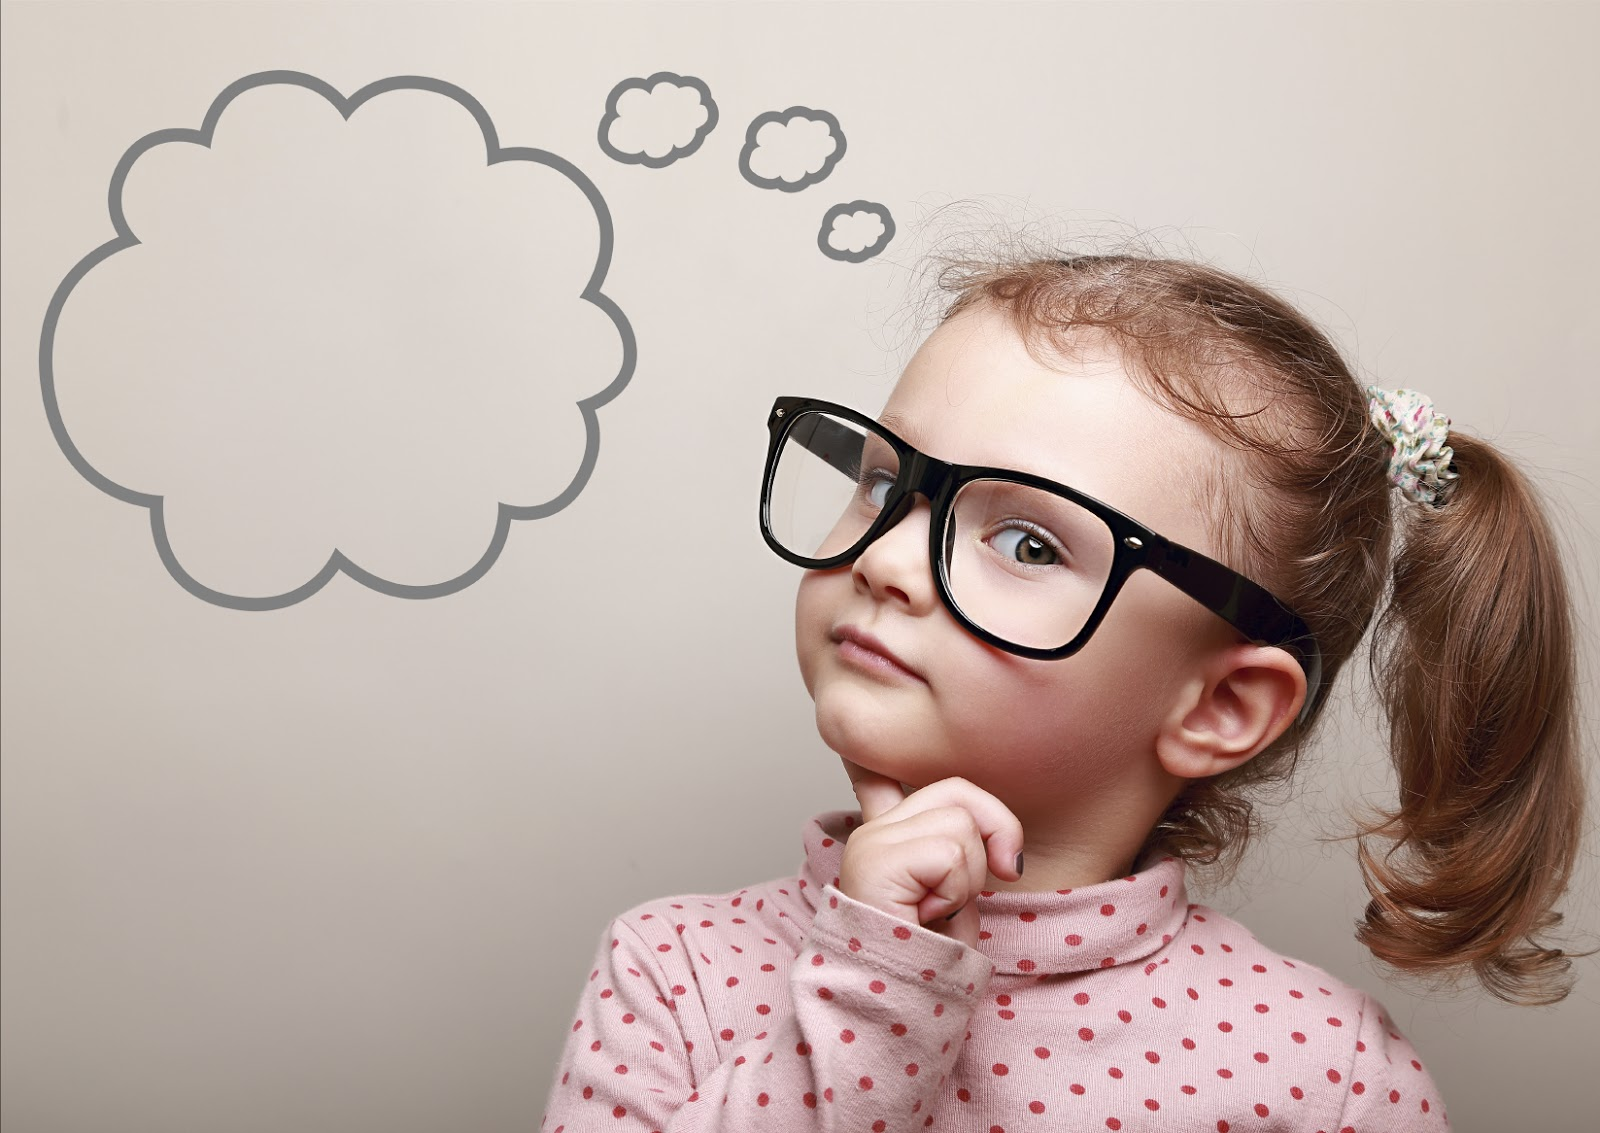 Remember Me     Free Critical Thinking Activities for Kids     JumpStart Why Kids Need To Develop Critical Thinking Skills